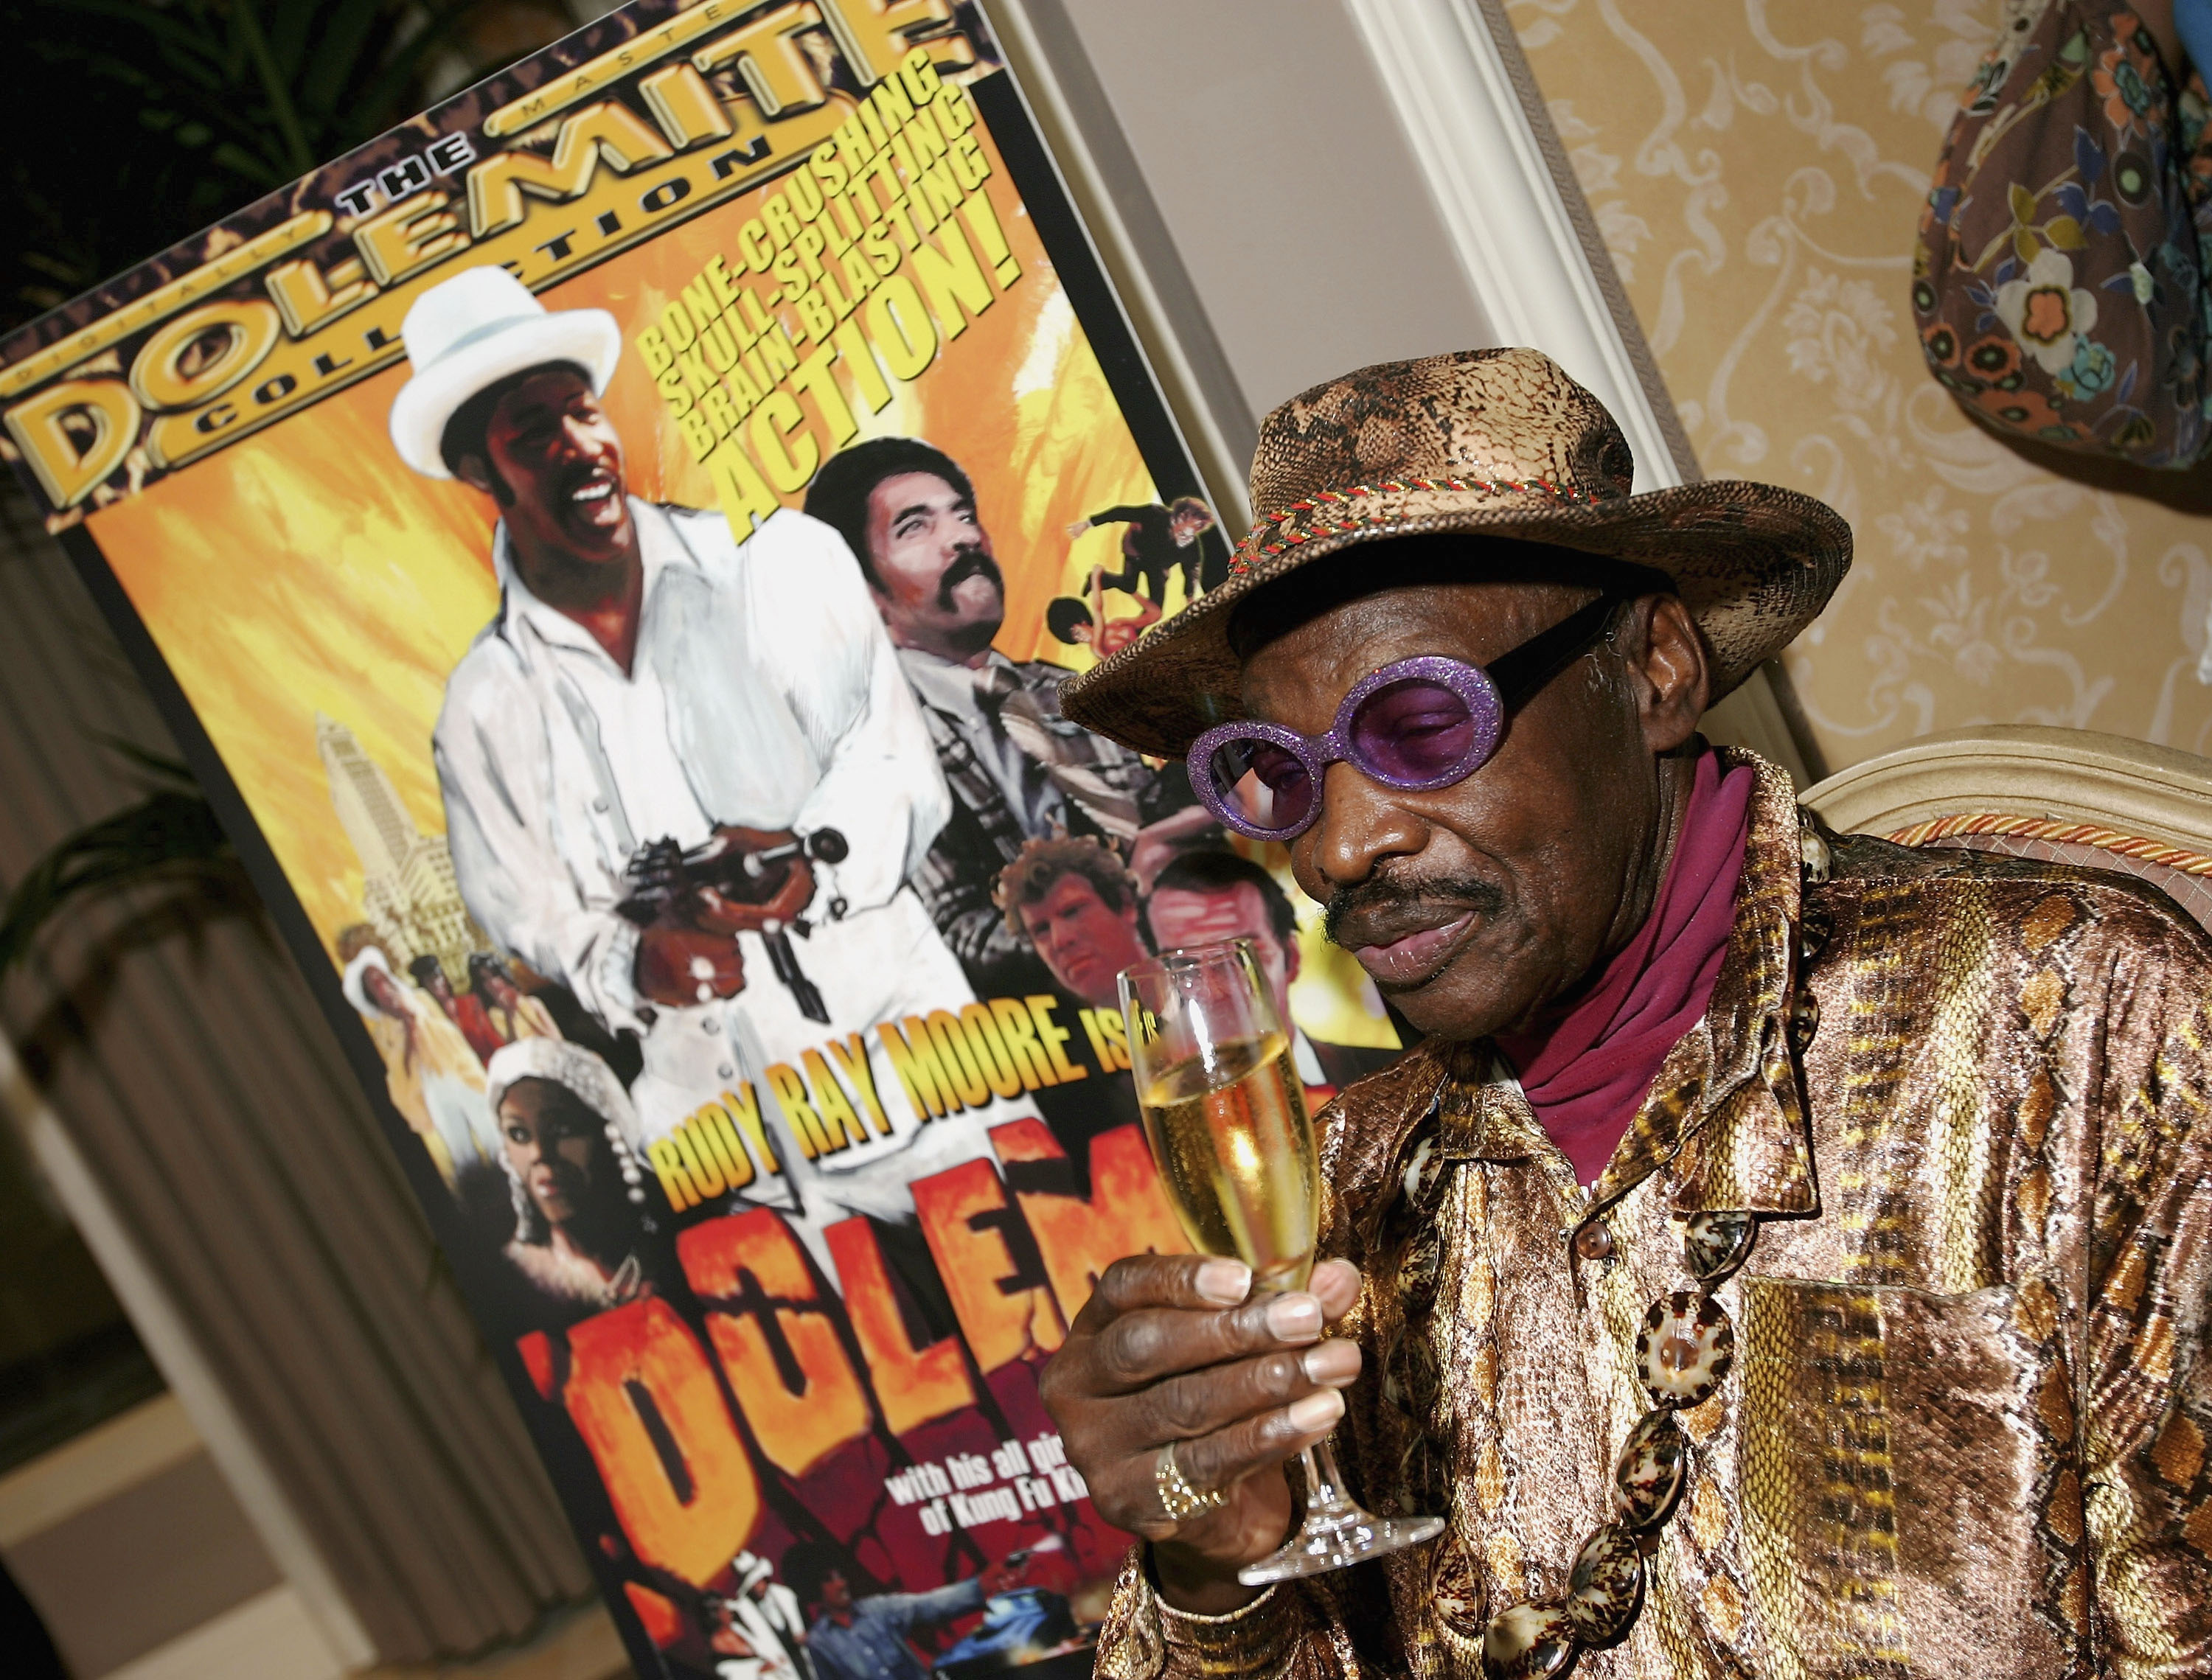 Rudy Ray Moore in 2005.